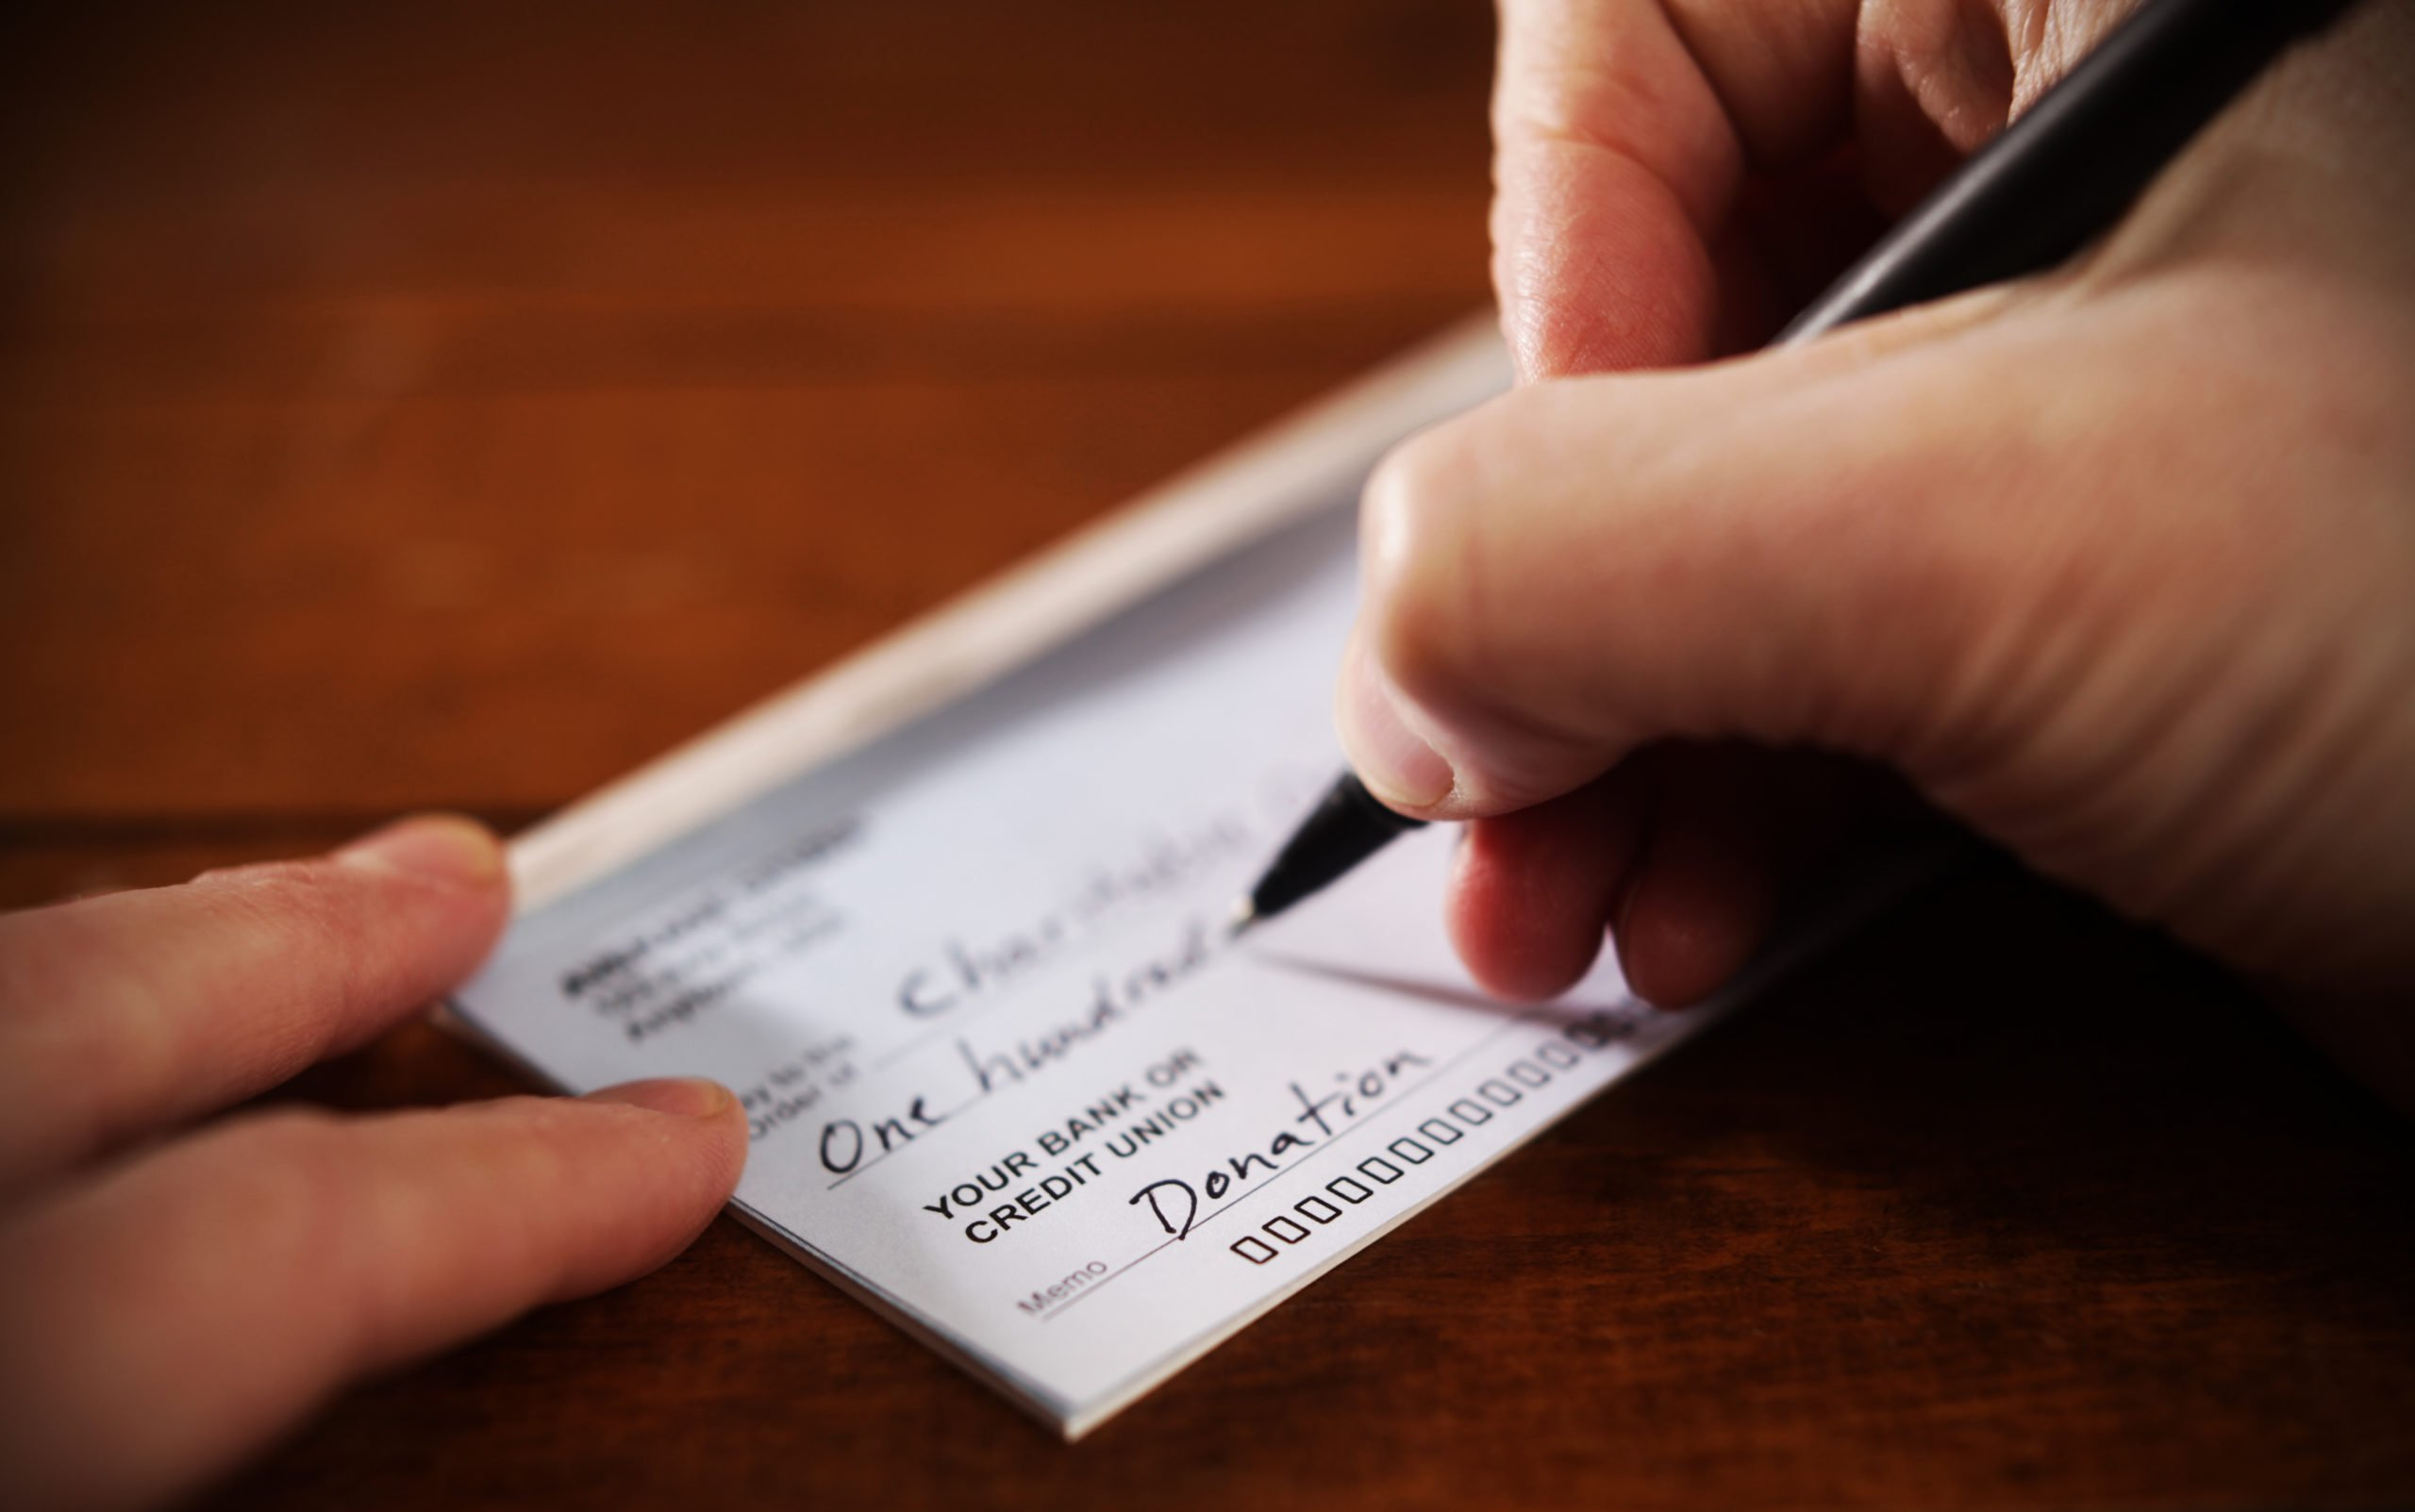 sample image of donation check being written